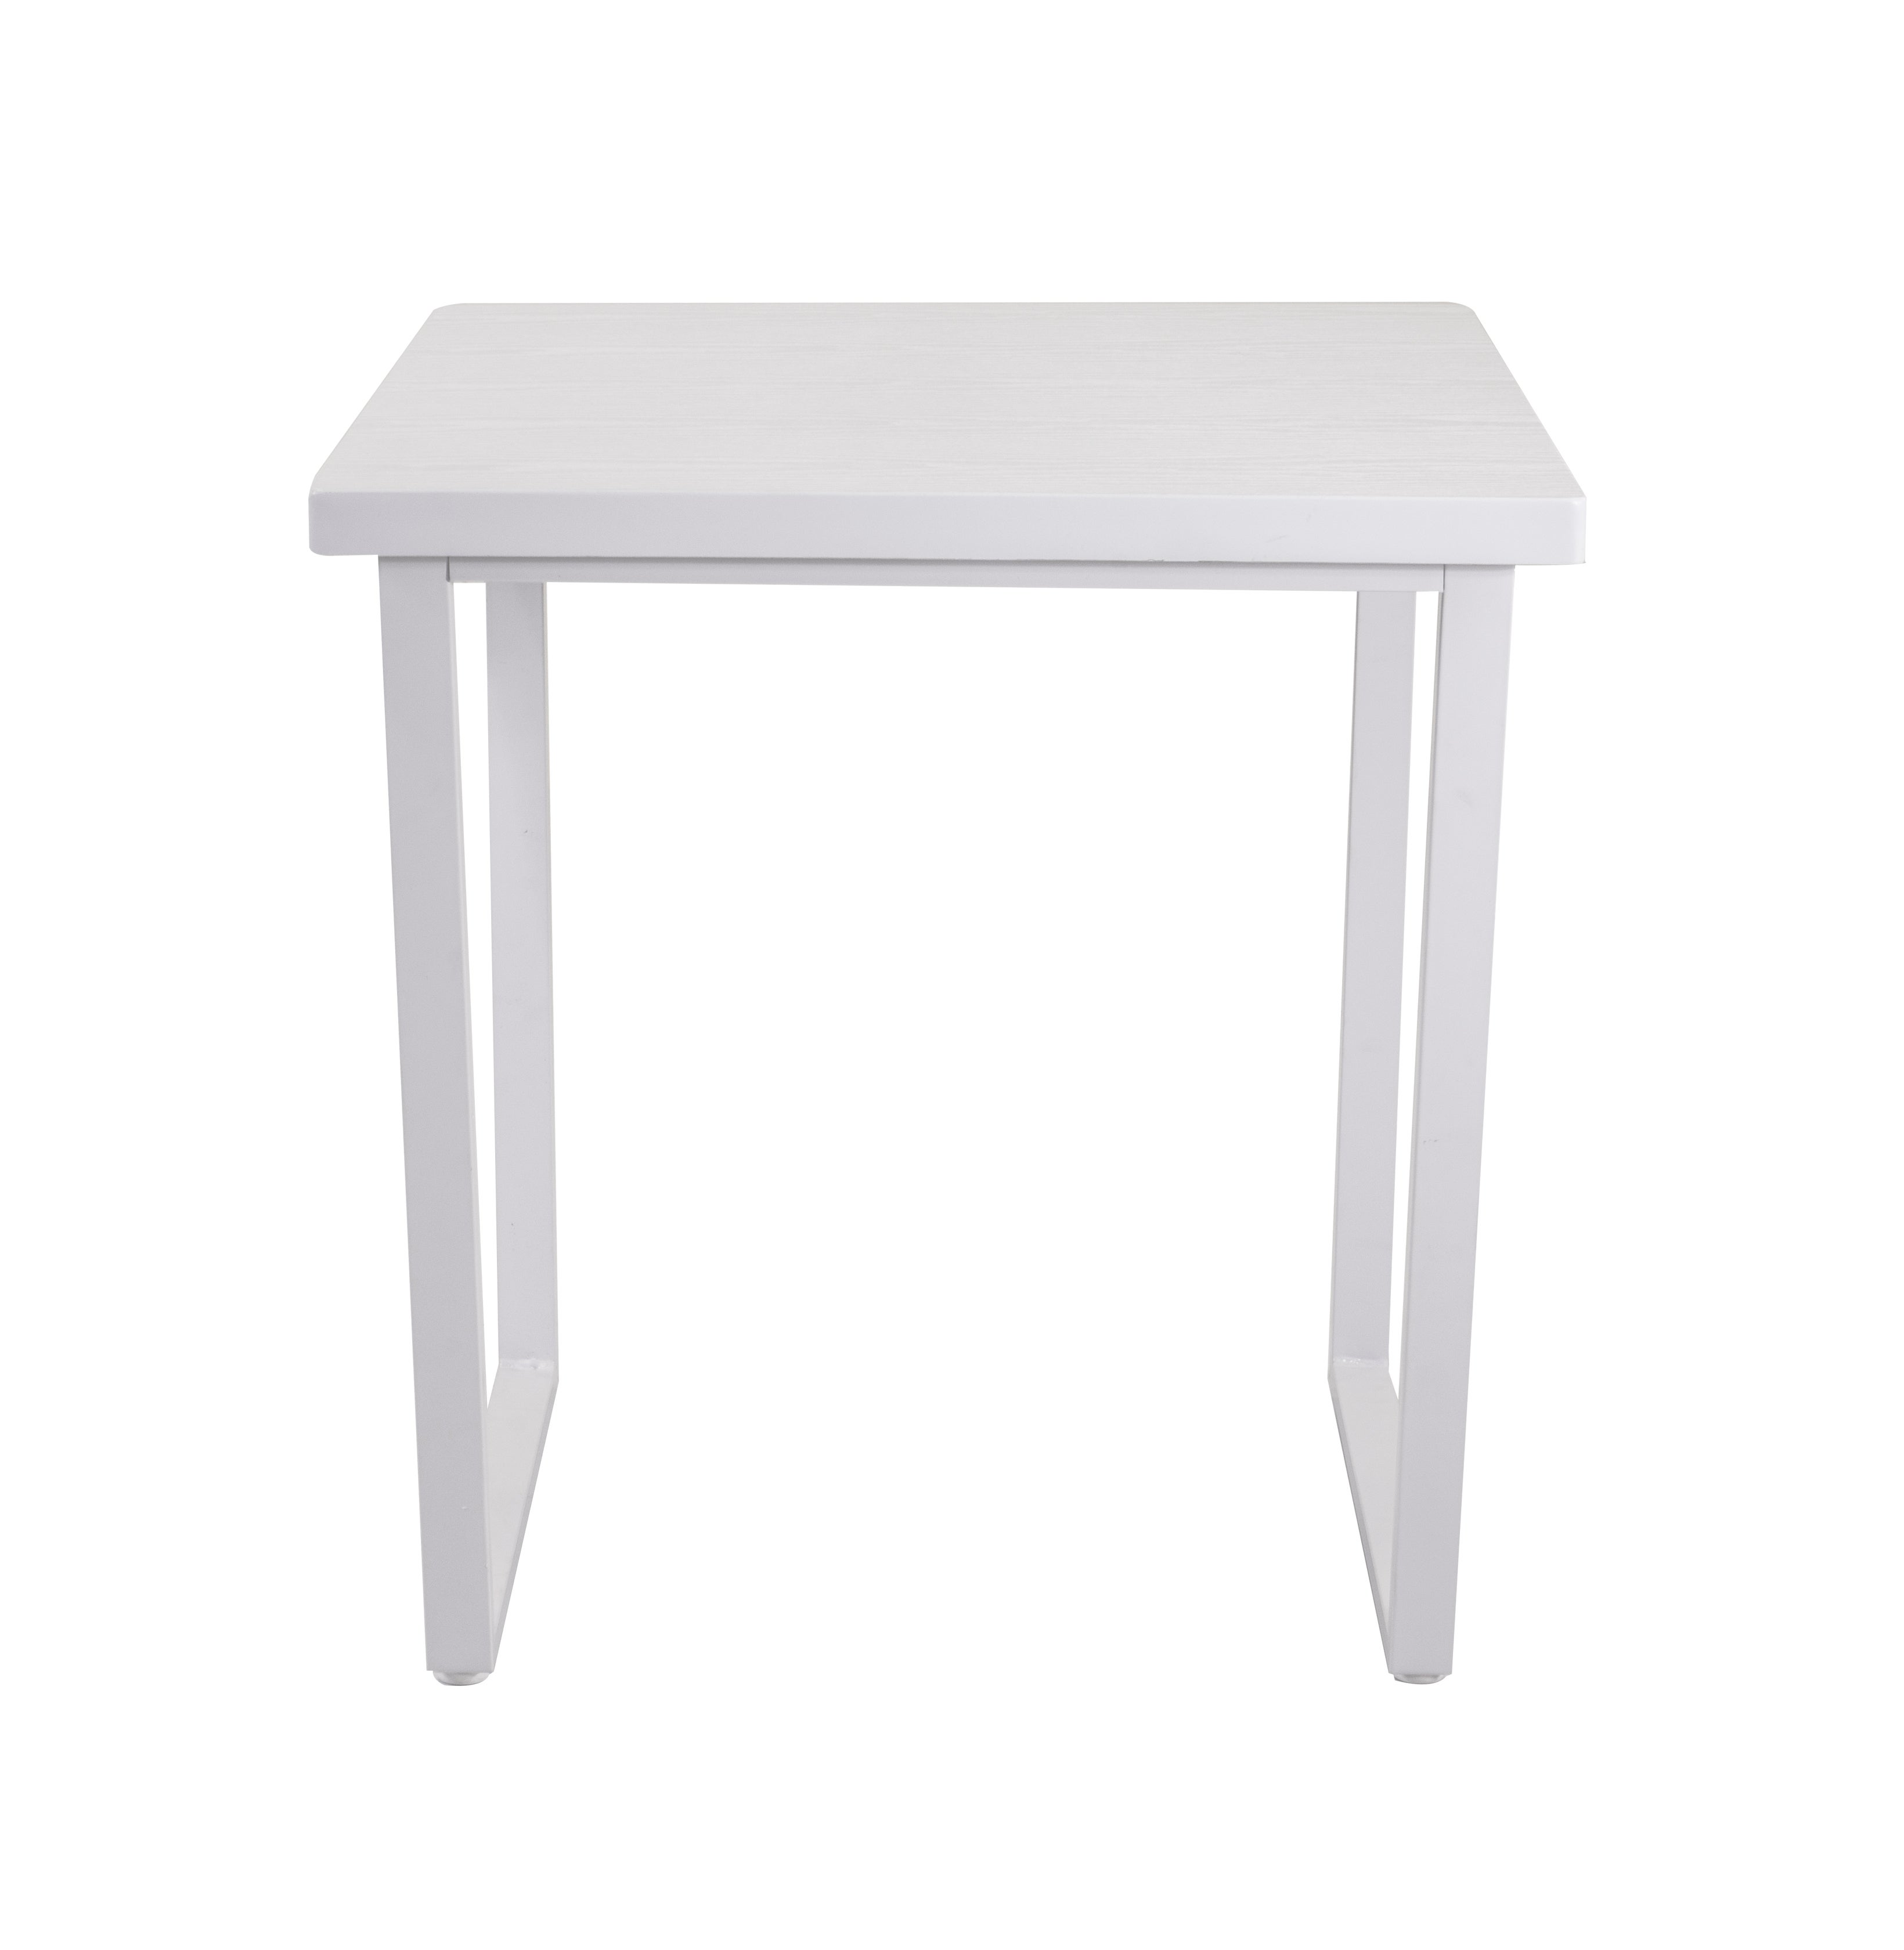 Vixen Compact Square Dining Table White